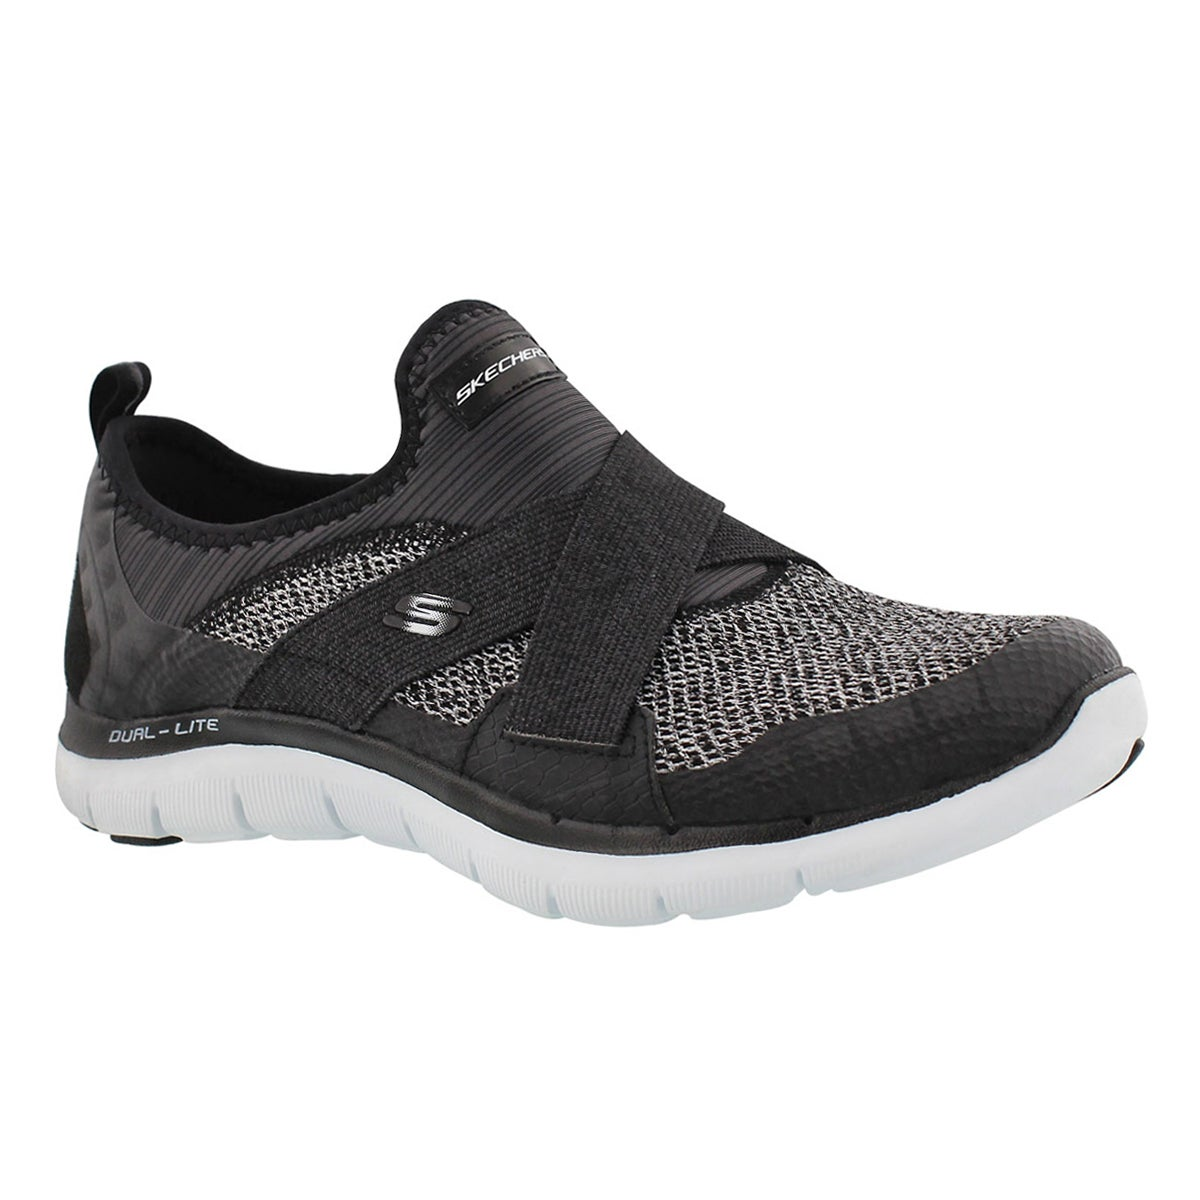 Women's FLEX APPEAL 2.0 NEW IMAGE black sneakers